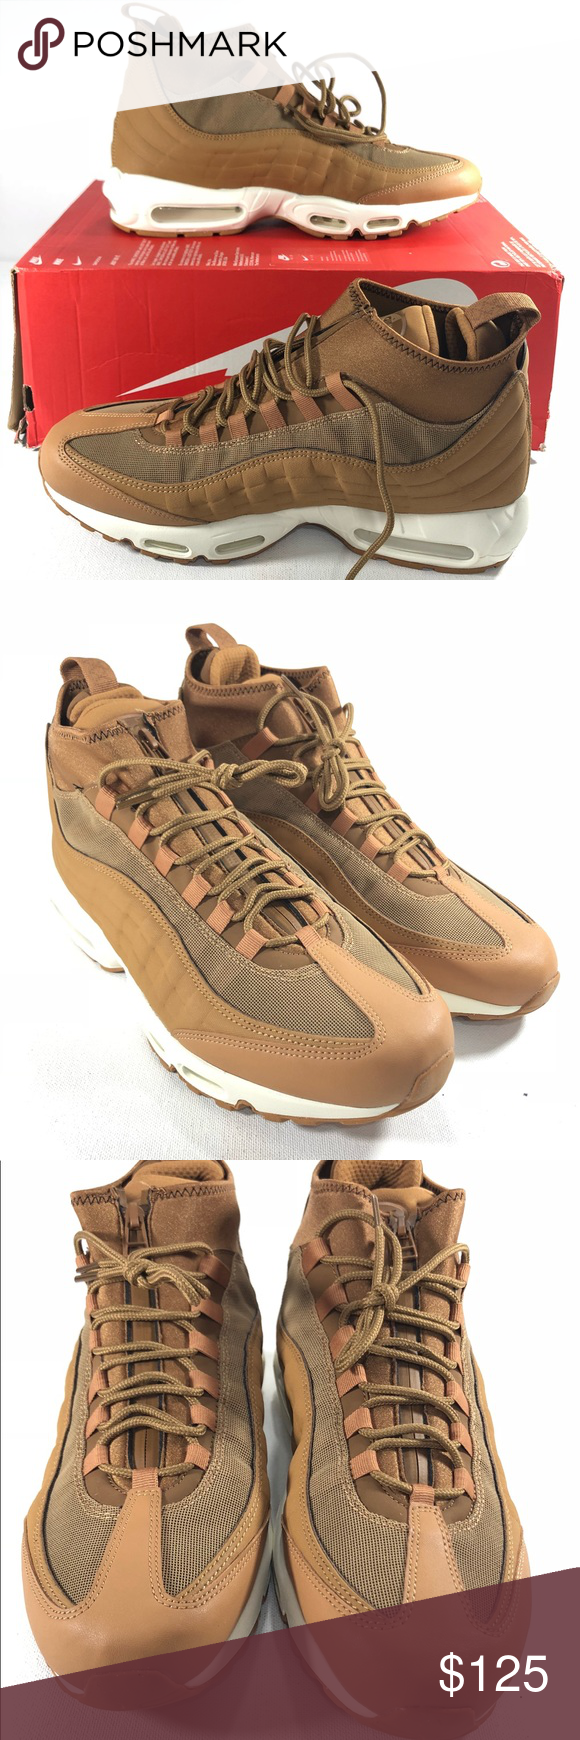 sports shoes d4617 3a4d6 Nike Air Max 95 Sneakerboot Wheat Flax Ale Brown Nike Air Max 95  Sneakerboot Wheat Flax Ale Model  806809-201 Color  Brown Gum Size  11.5 Men s  Nike Shoes